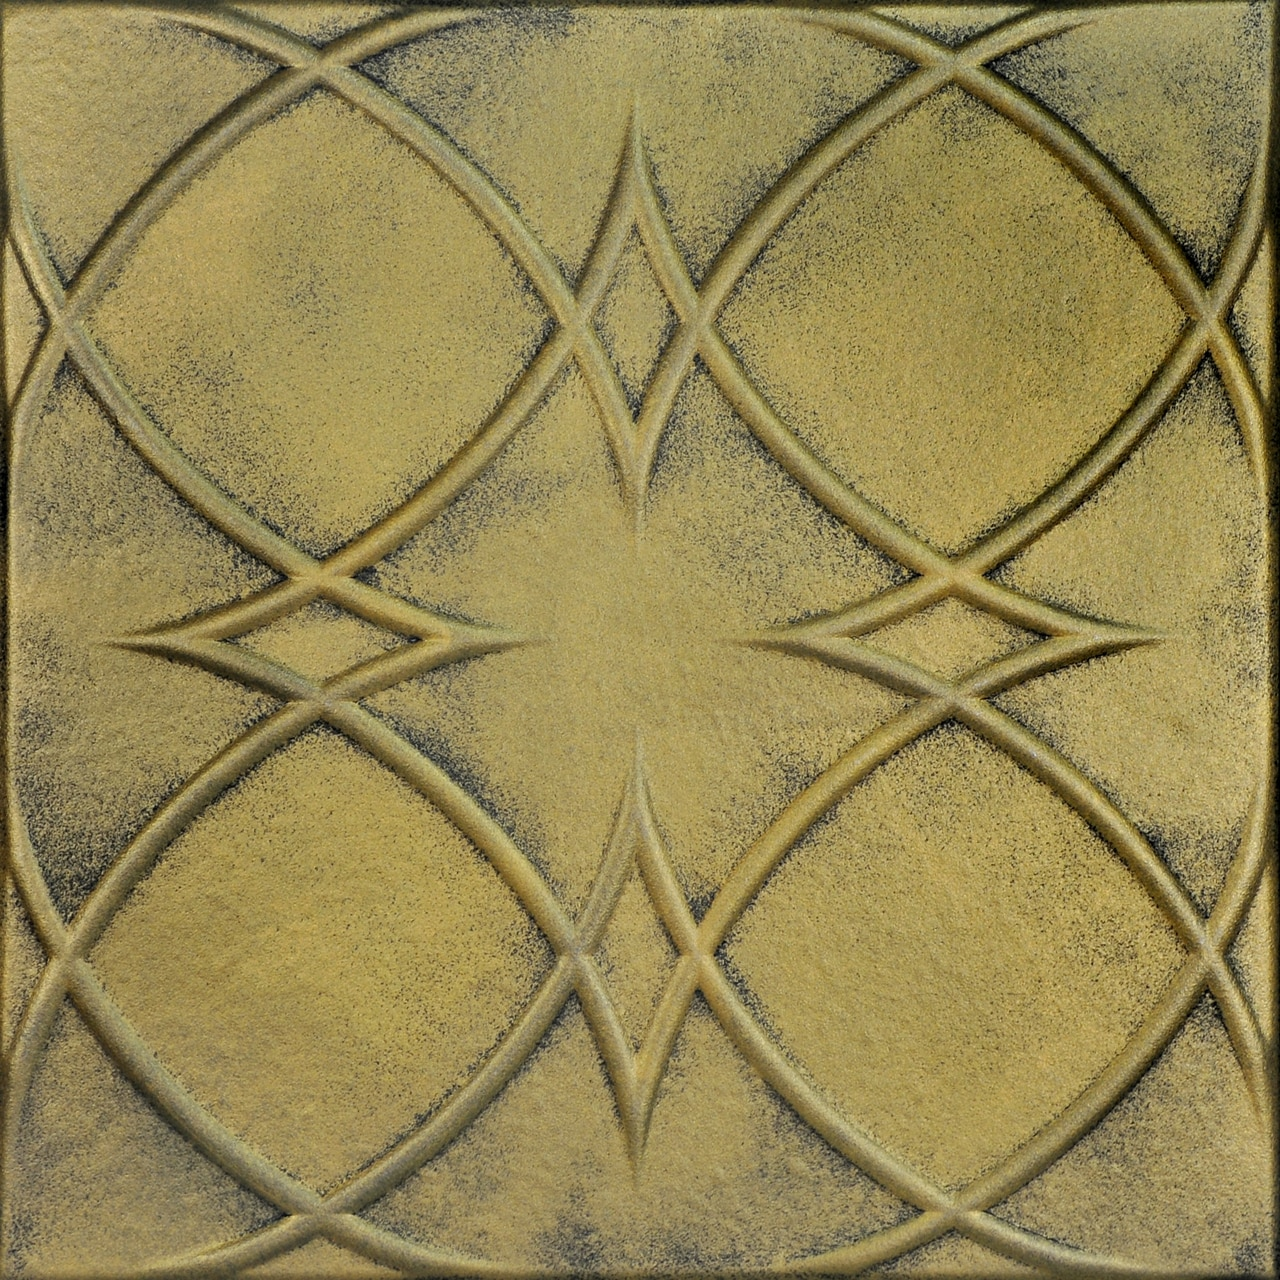 Circles and Stars Glue-up Styrofoam Ceiling Tile 20 in x 20 in - #R82